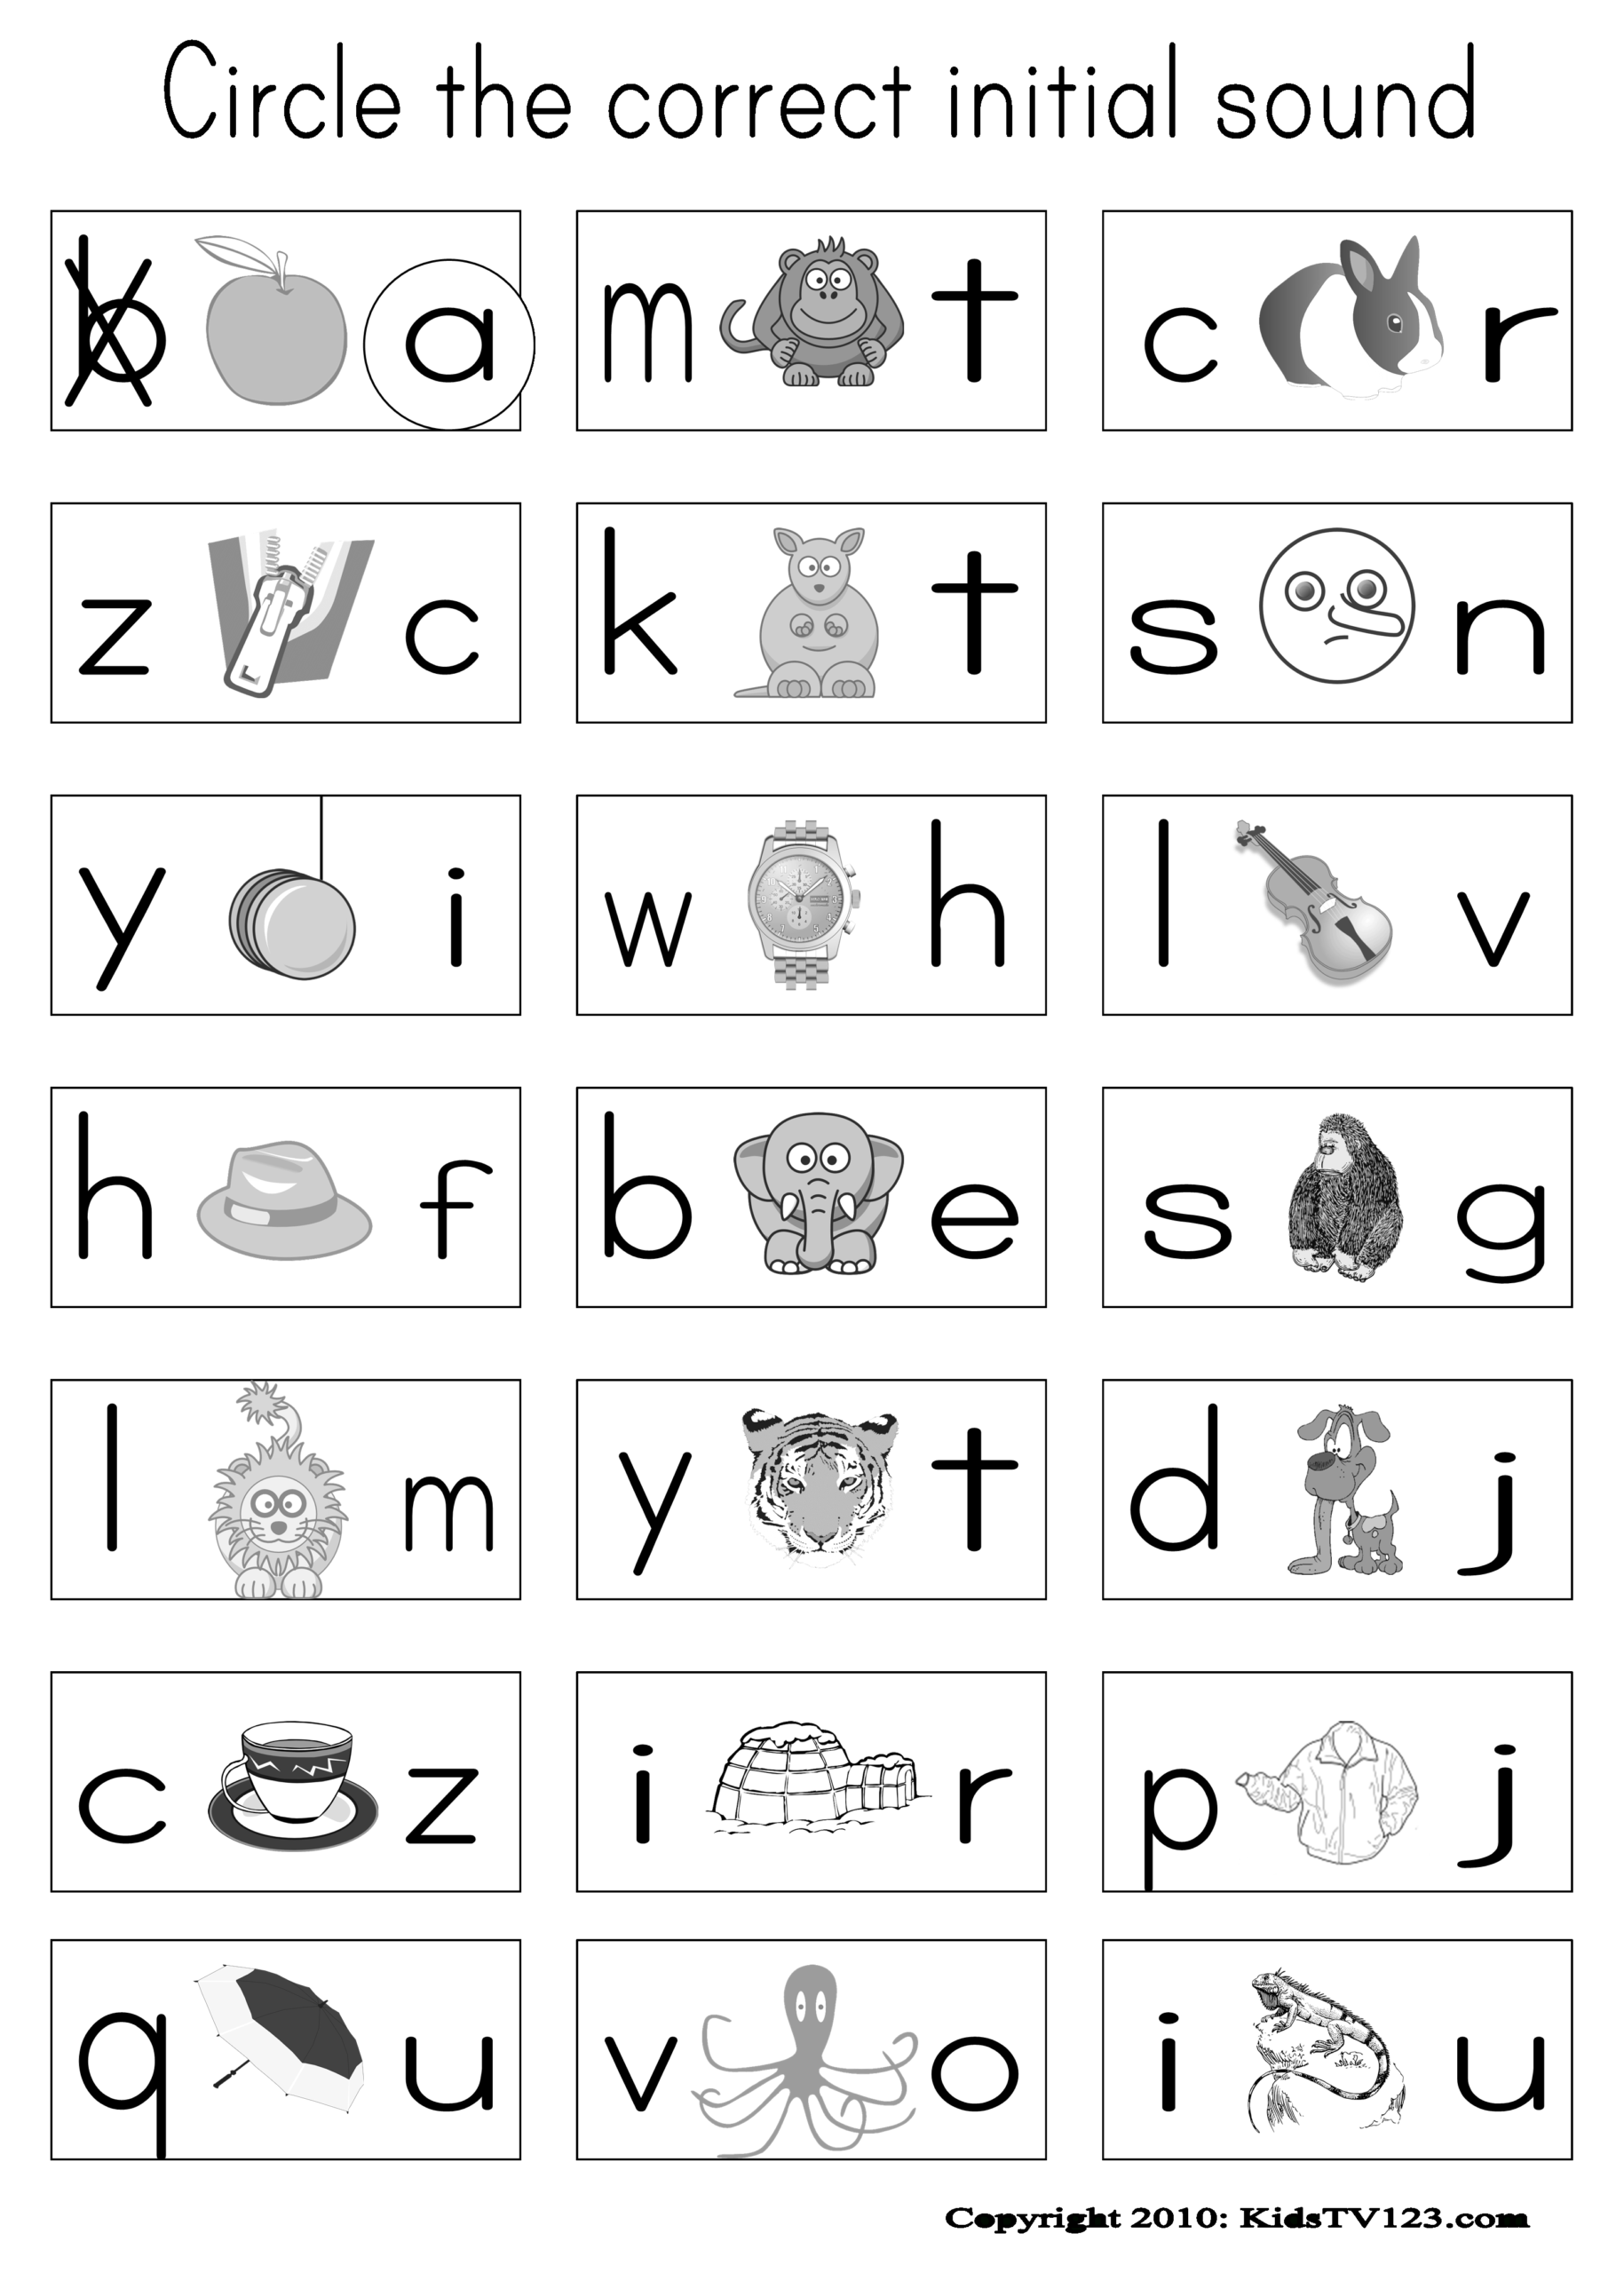 Kidstv123 - Phonics Worksheets | Phonics Kindergarten pertaining to Alphabet Phonics Worksheets For Kindergarten